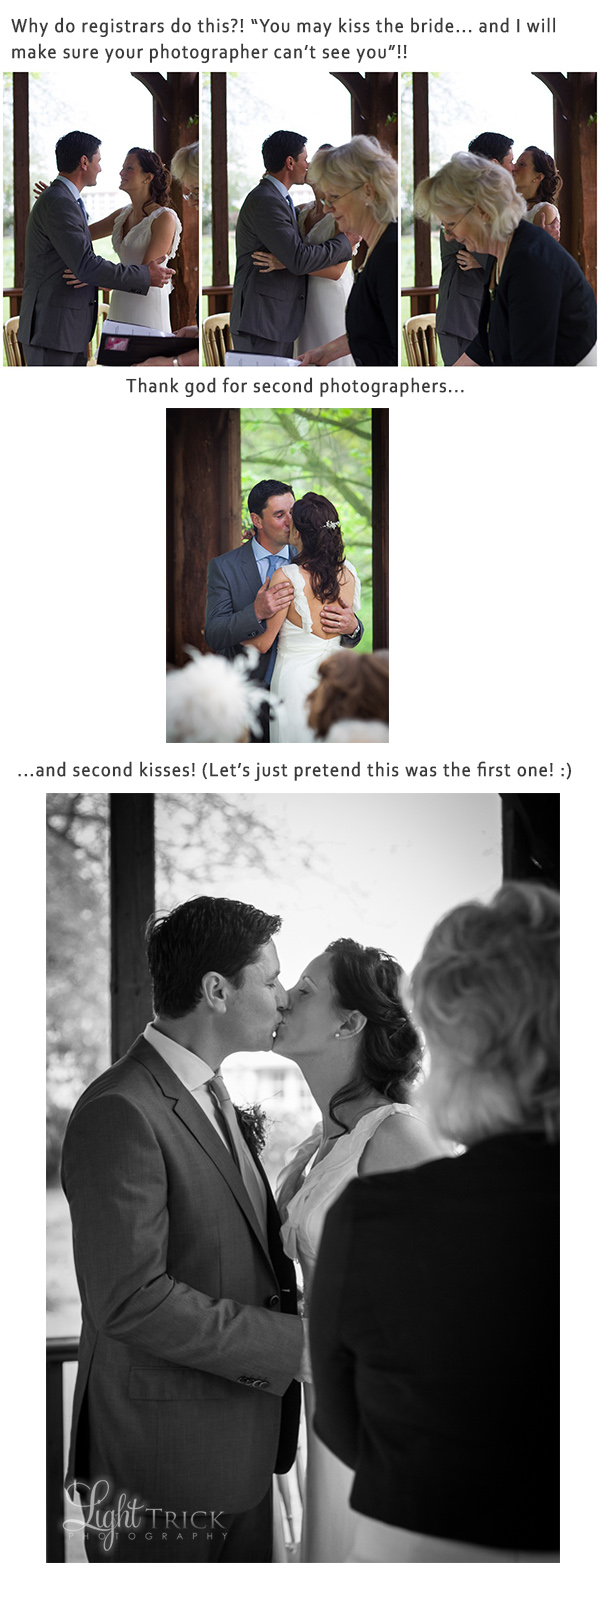 wedding photographer misses first kiss